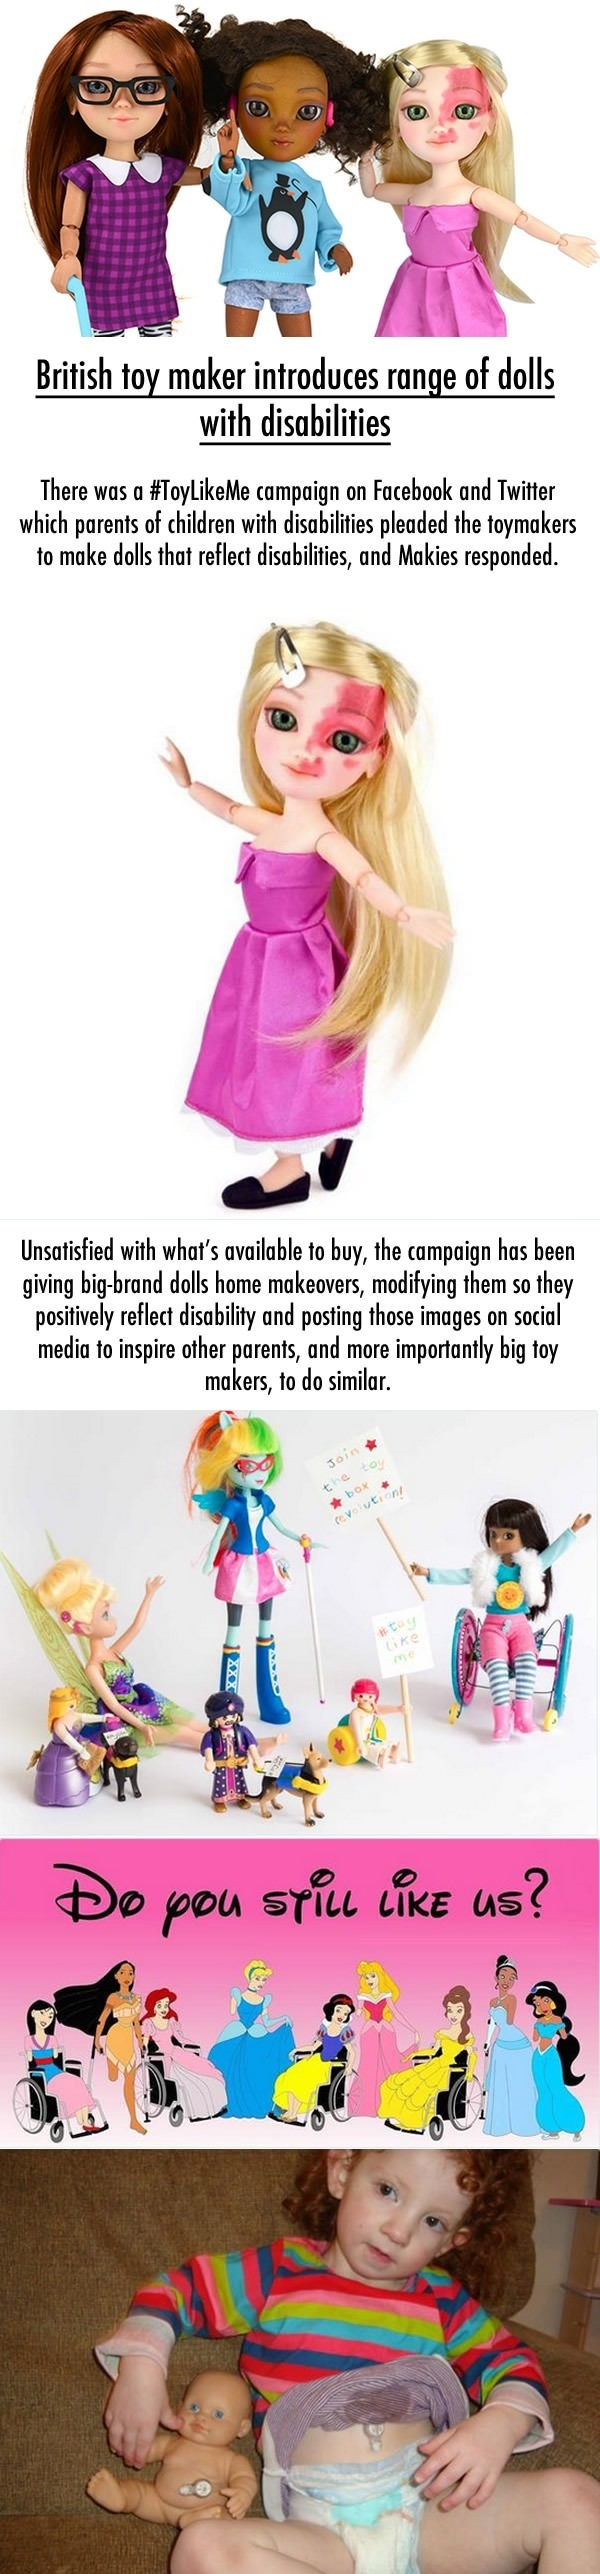 Dolls with disabilities